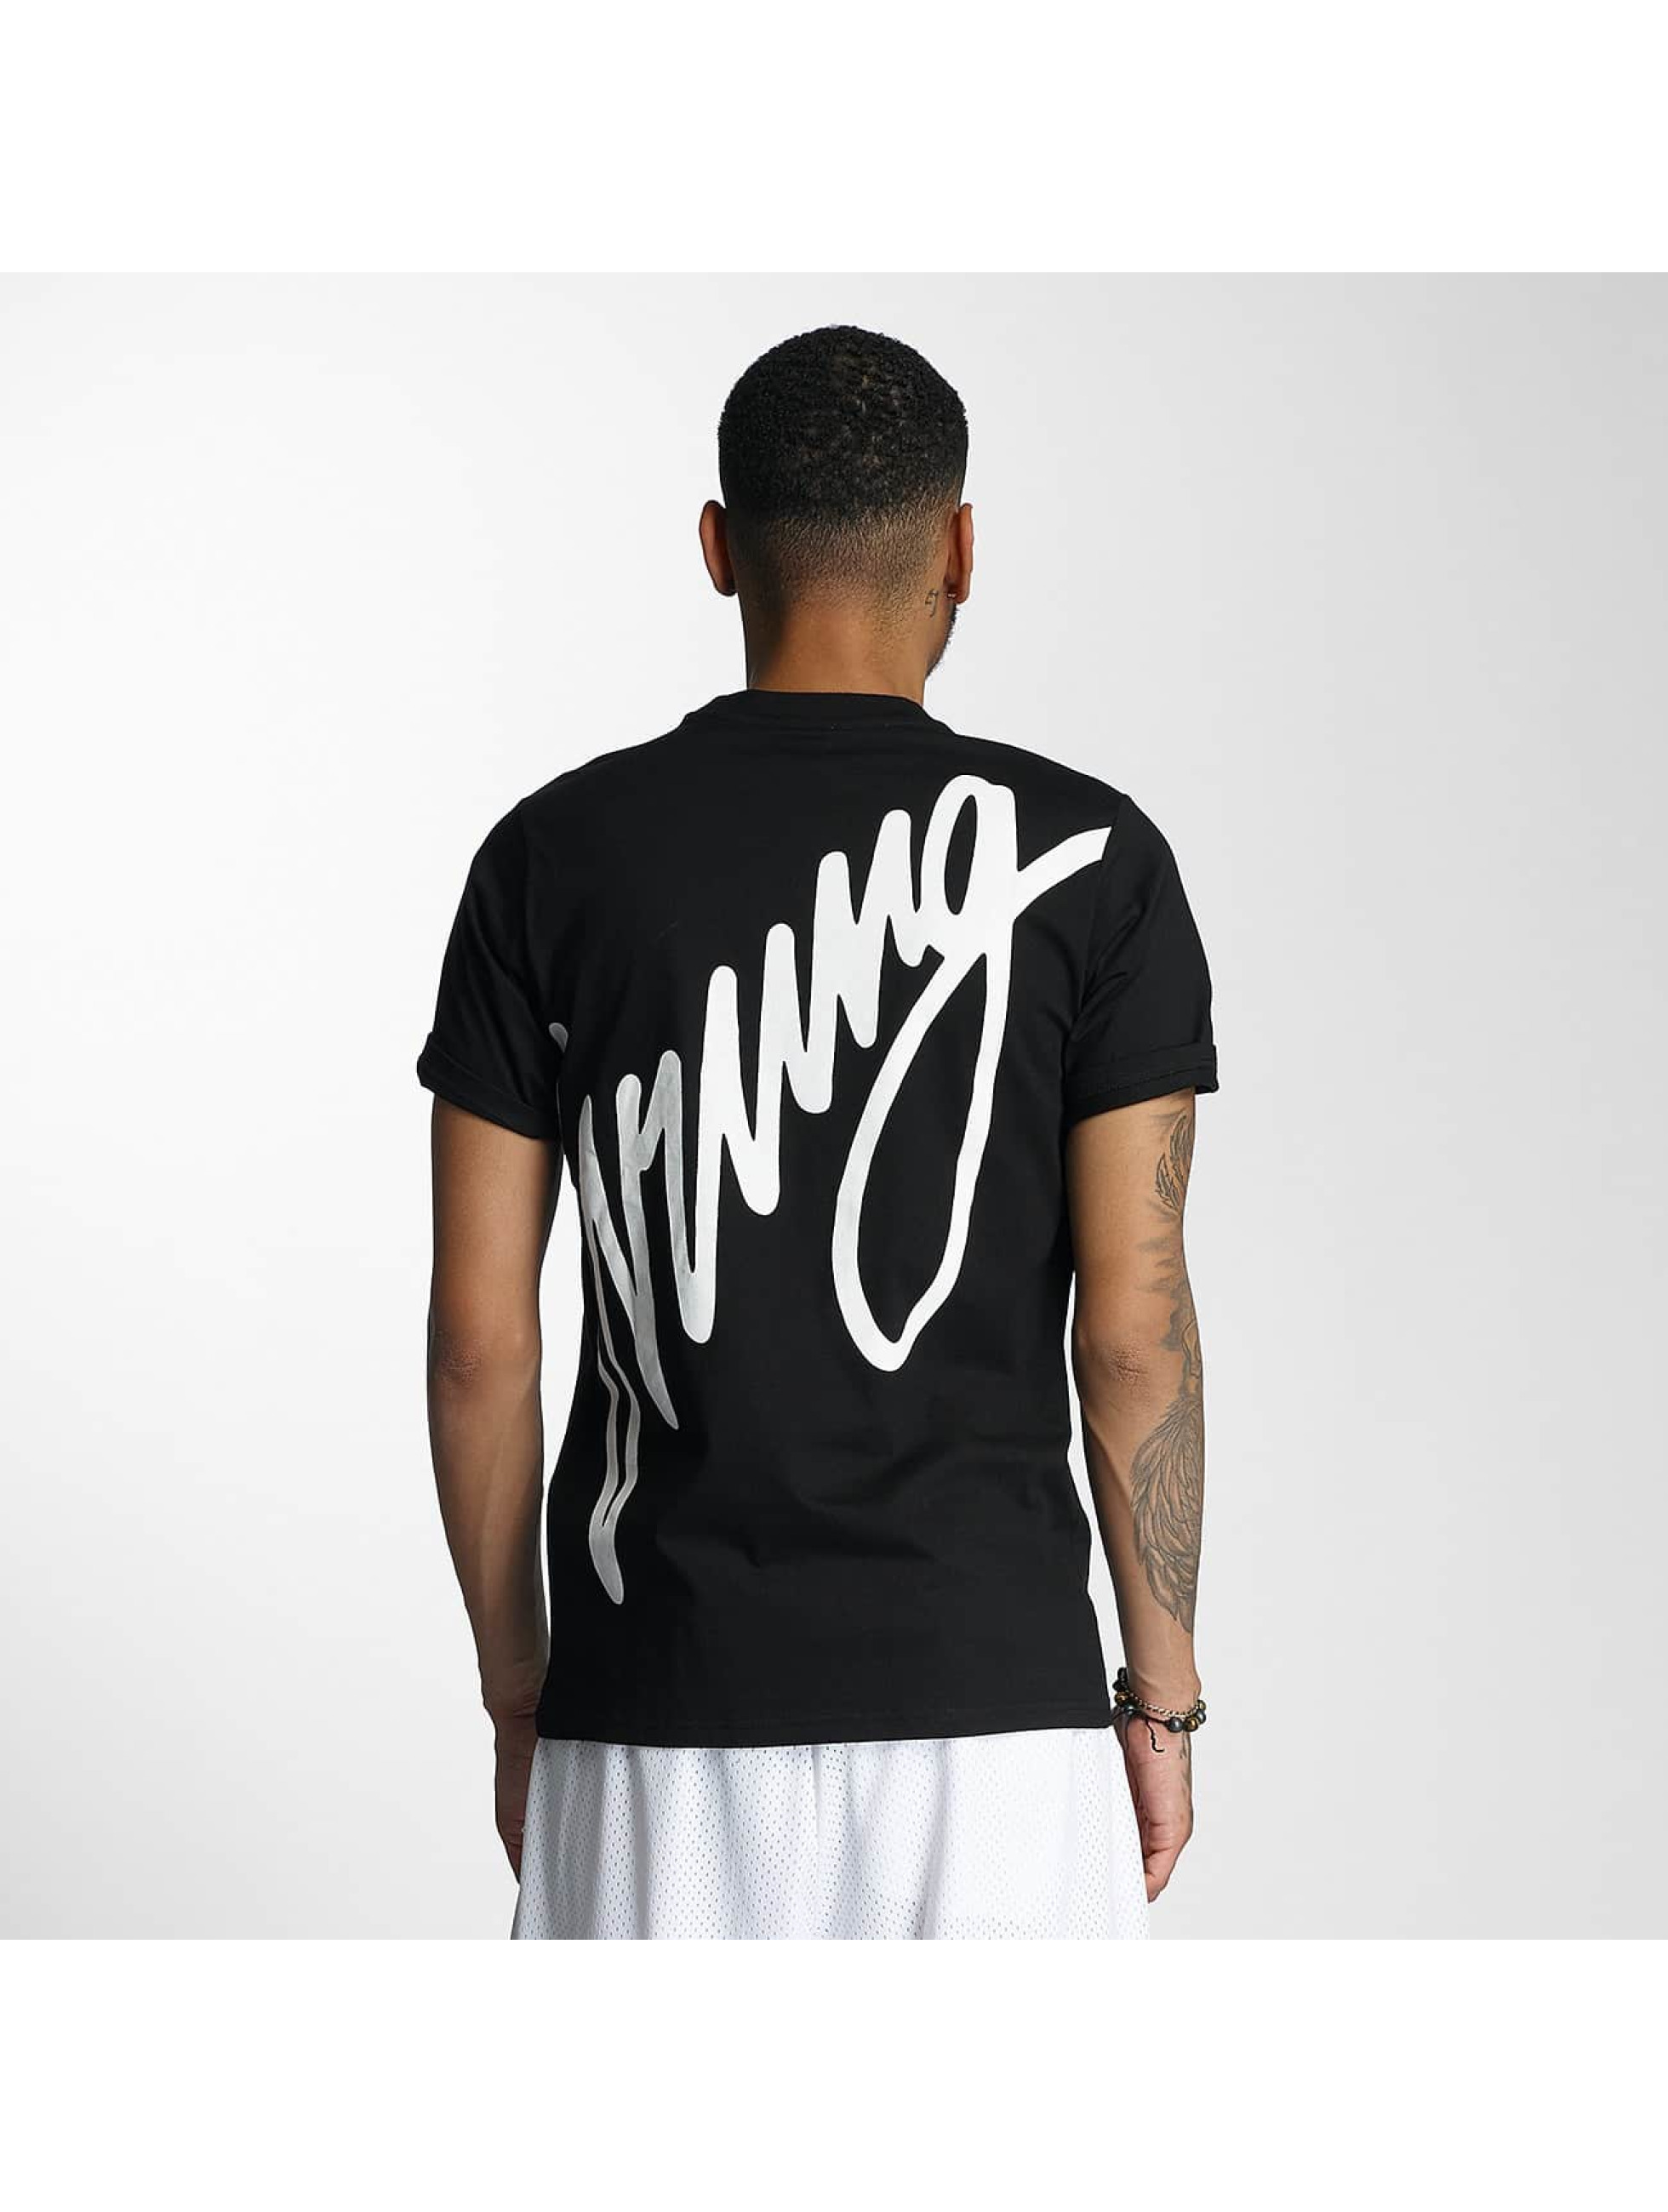 Wrung Division T-Shirt Black Sign black